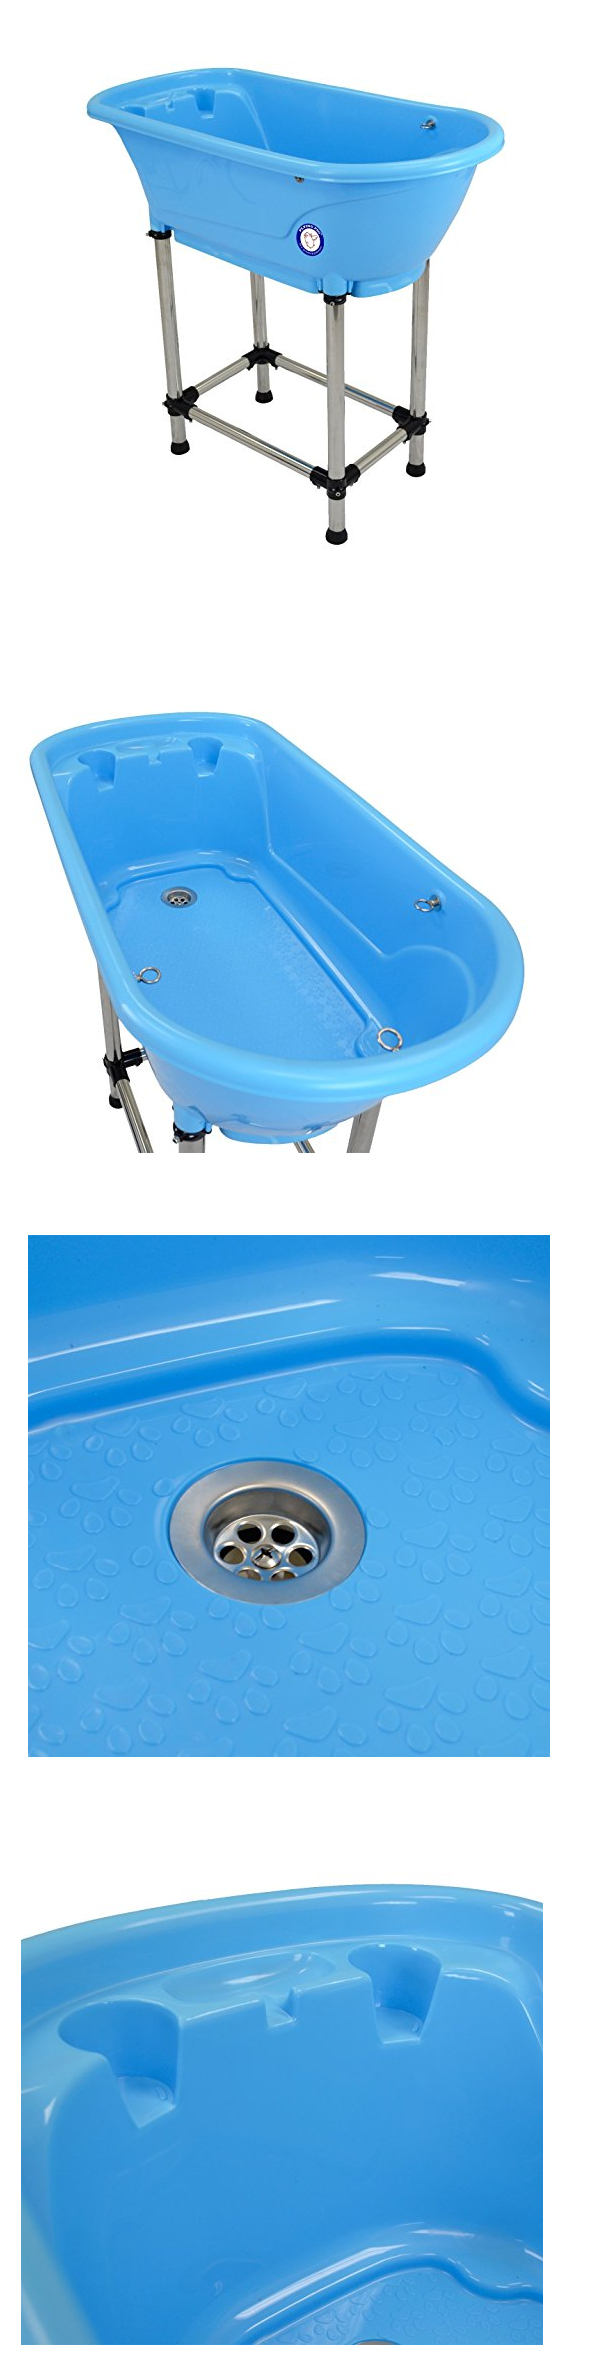 Grooming Tables 146241: Flying Pig Blue Pet Dog Cat Washing Shower ...